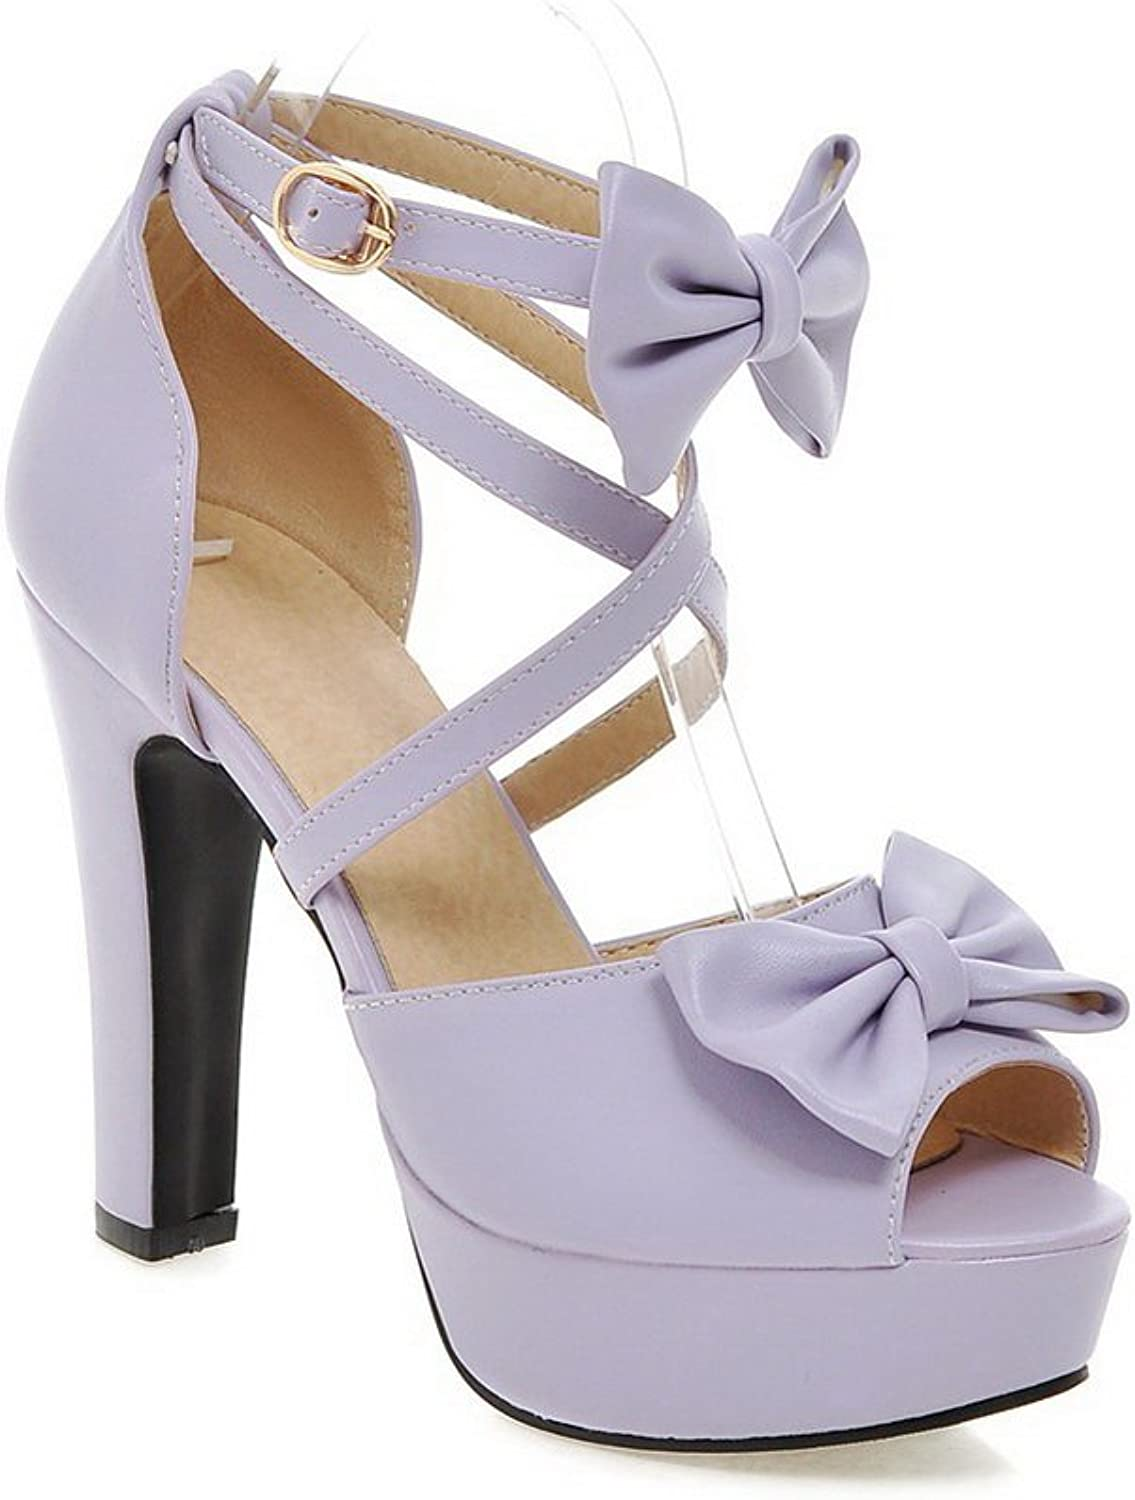 1TO9 Womens Cold Lining Peep-Toe Non-Marking Urethane Sandals MJS03167